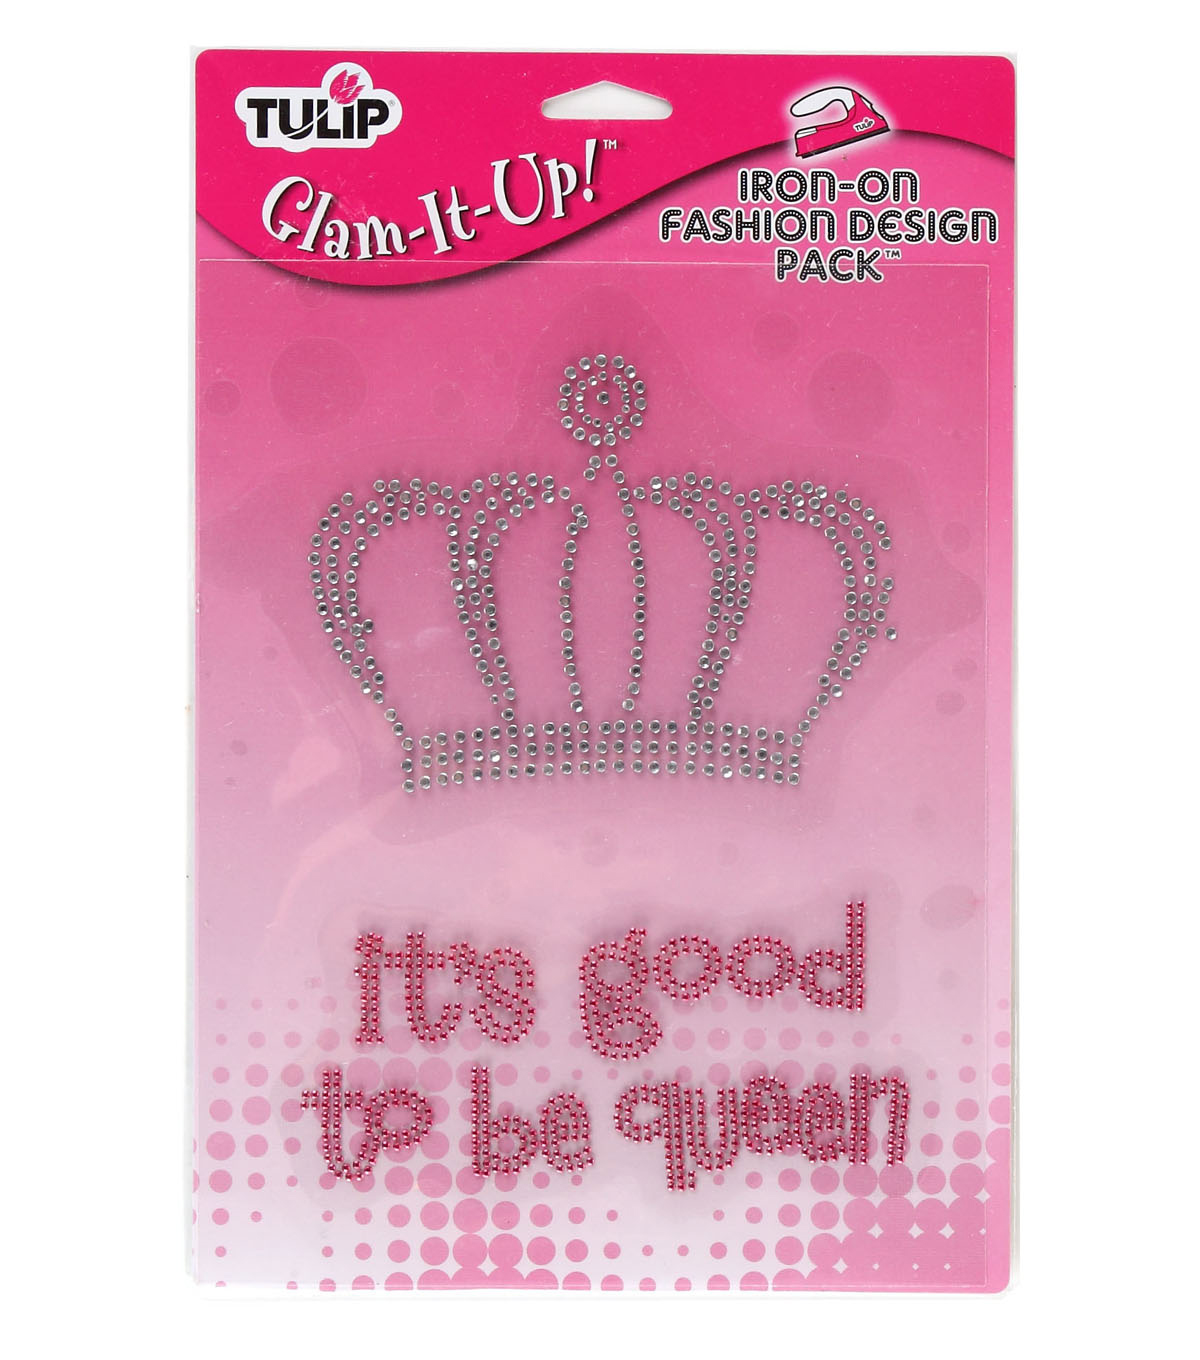 Tulip® Glam-It-Up!™ Iron On Large Pack-Queen